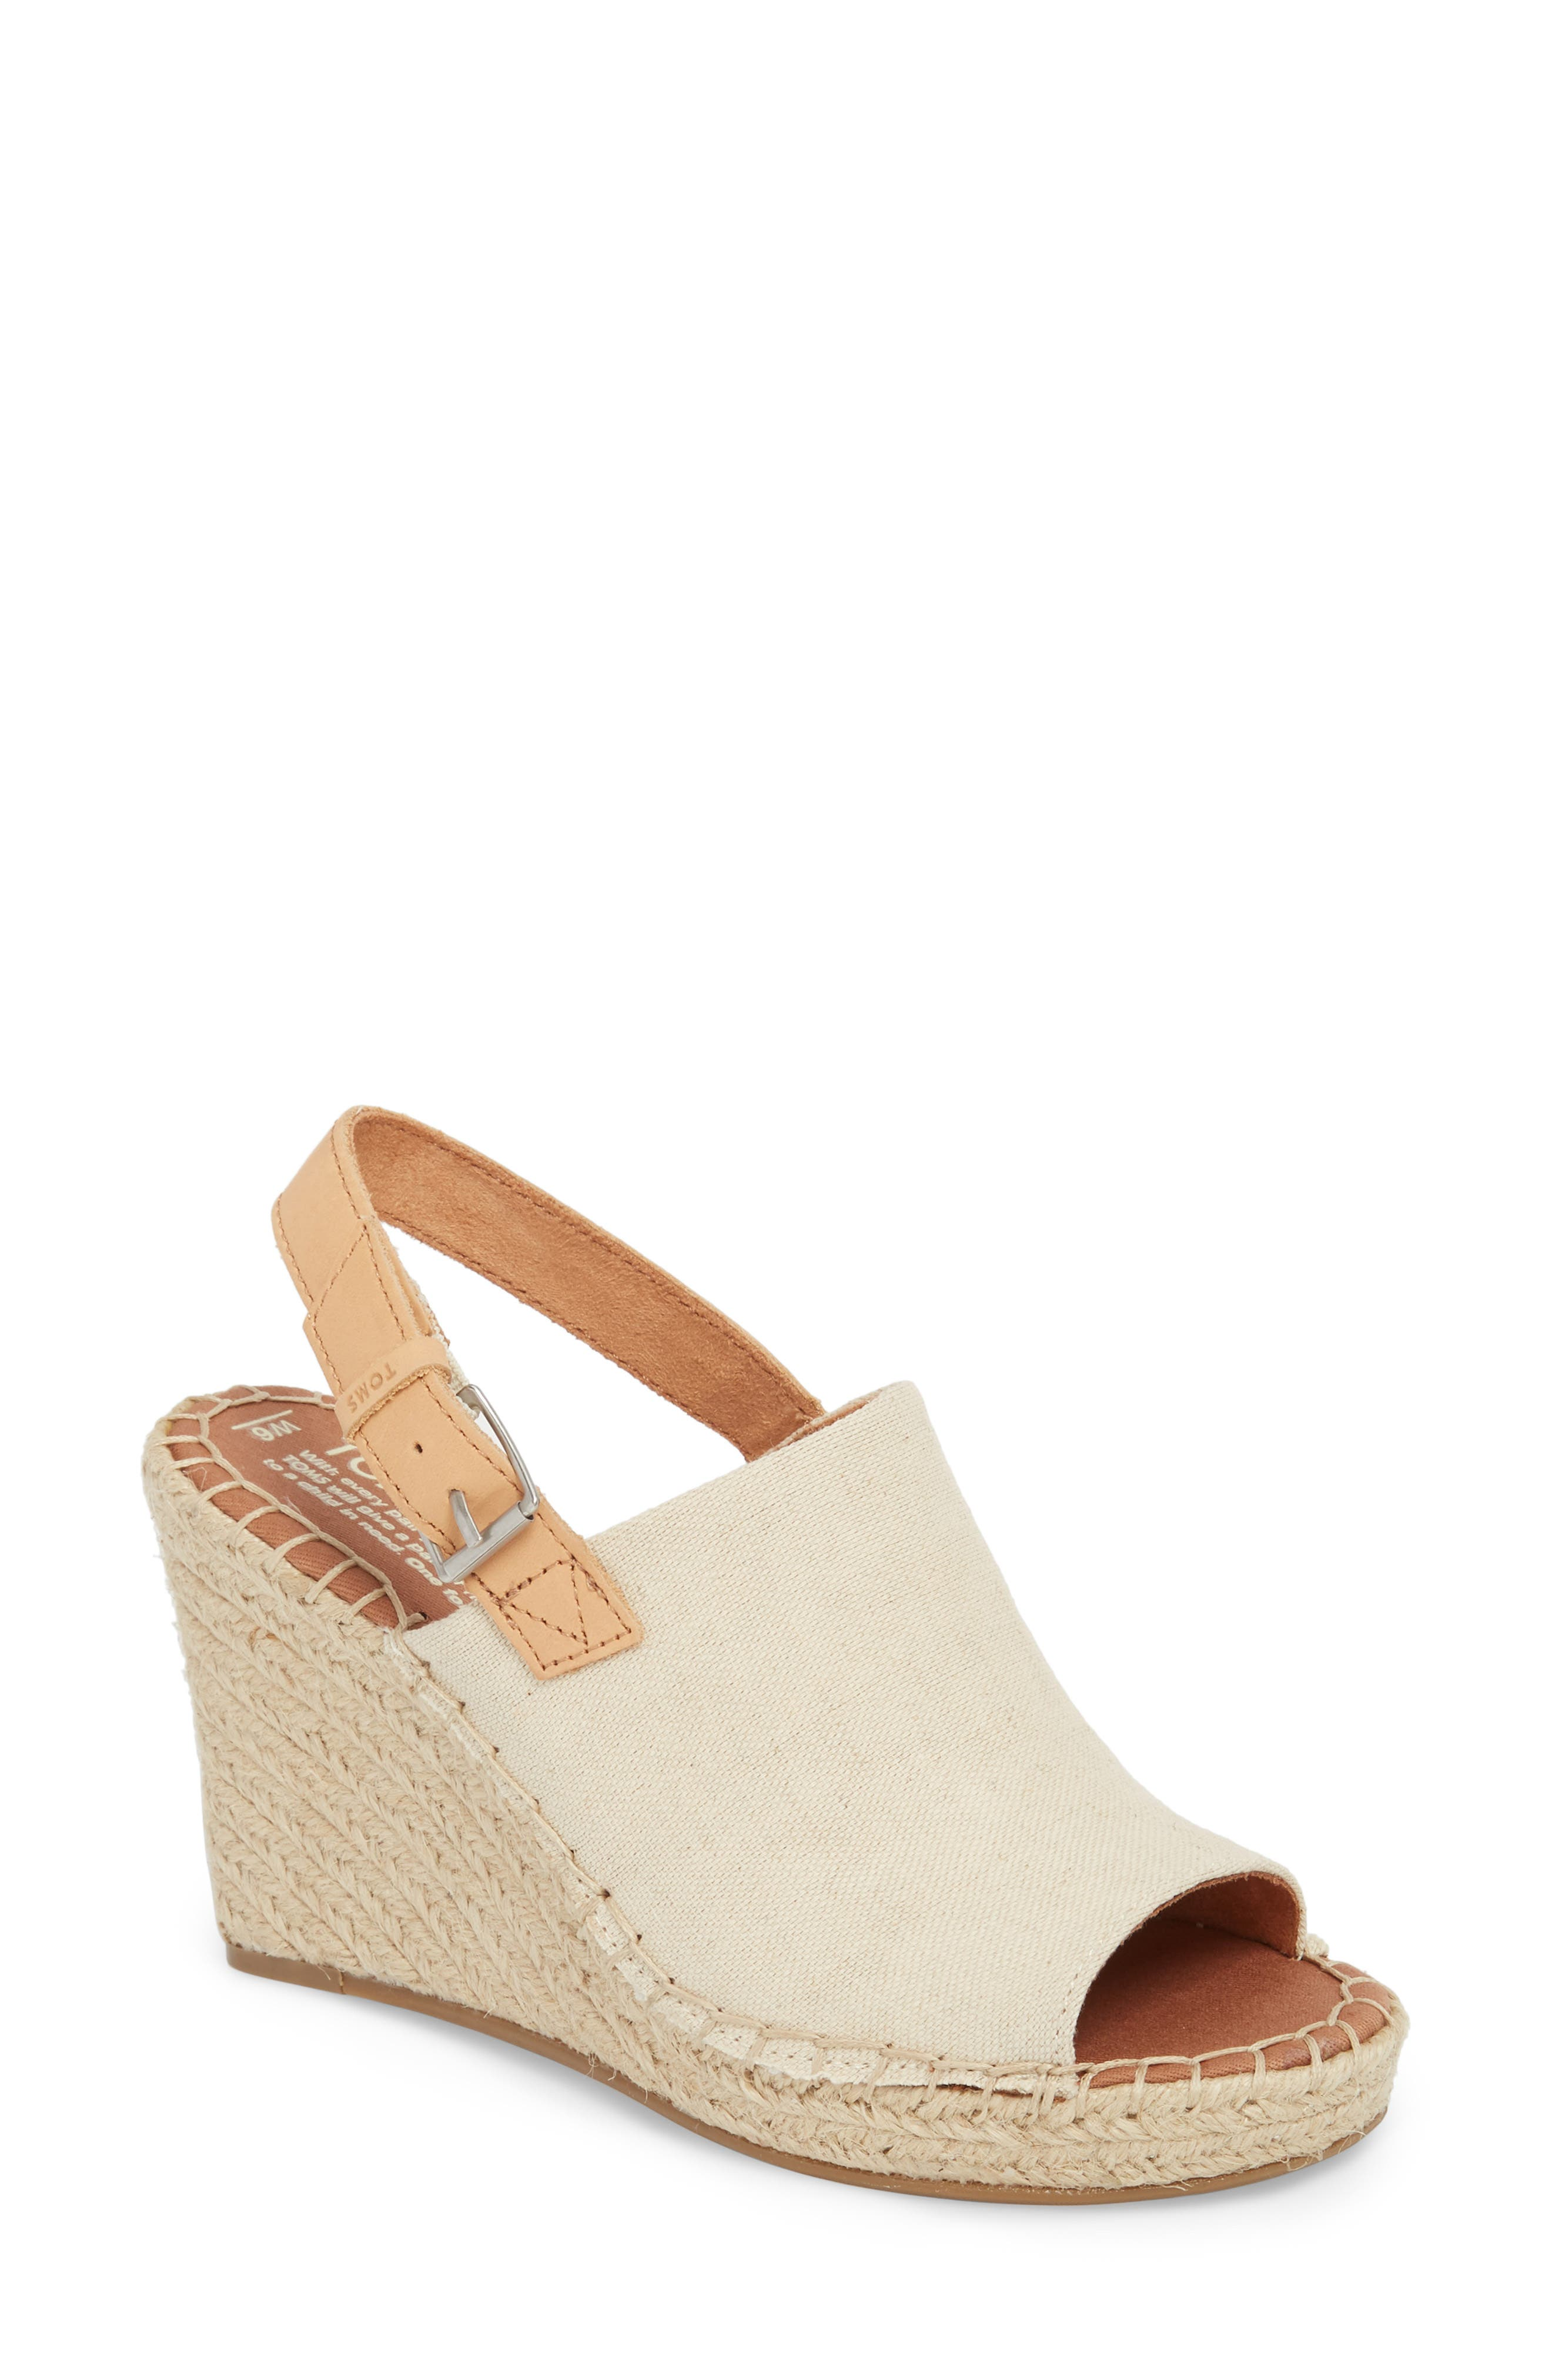 Monica Slingback Wedge,                         Main,                         color, NATURAL HEMP/ LEATHER